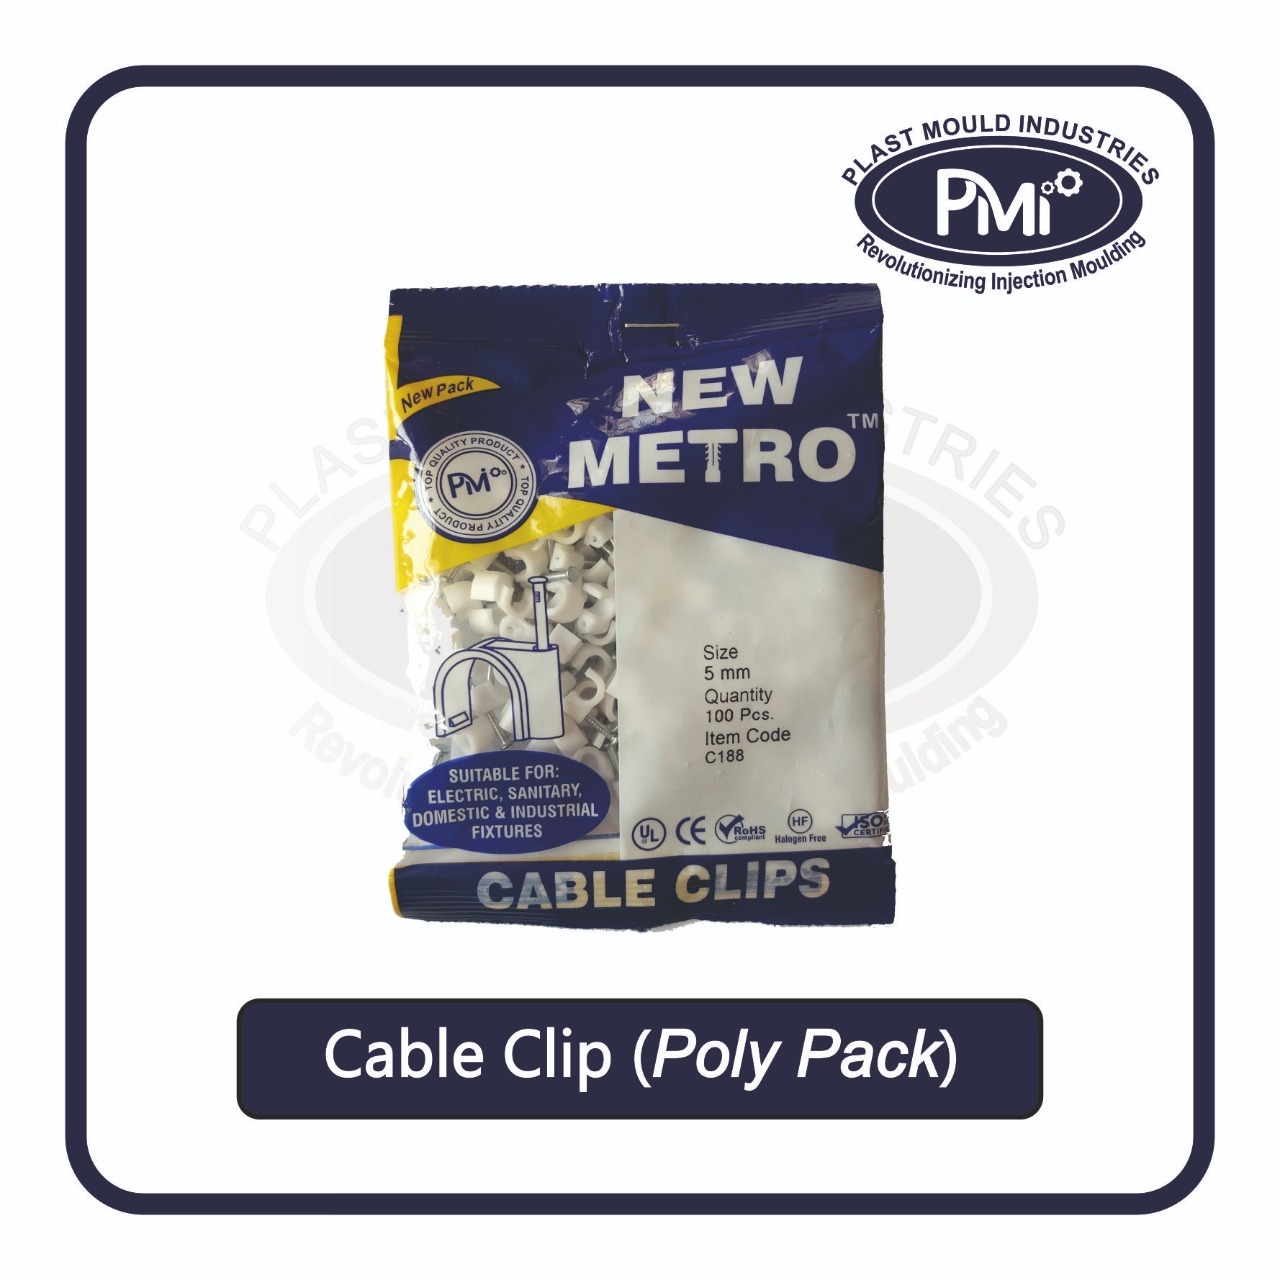 32 mm Cable Clip